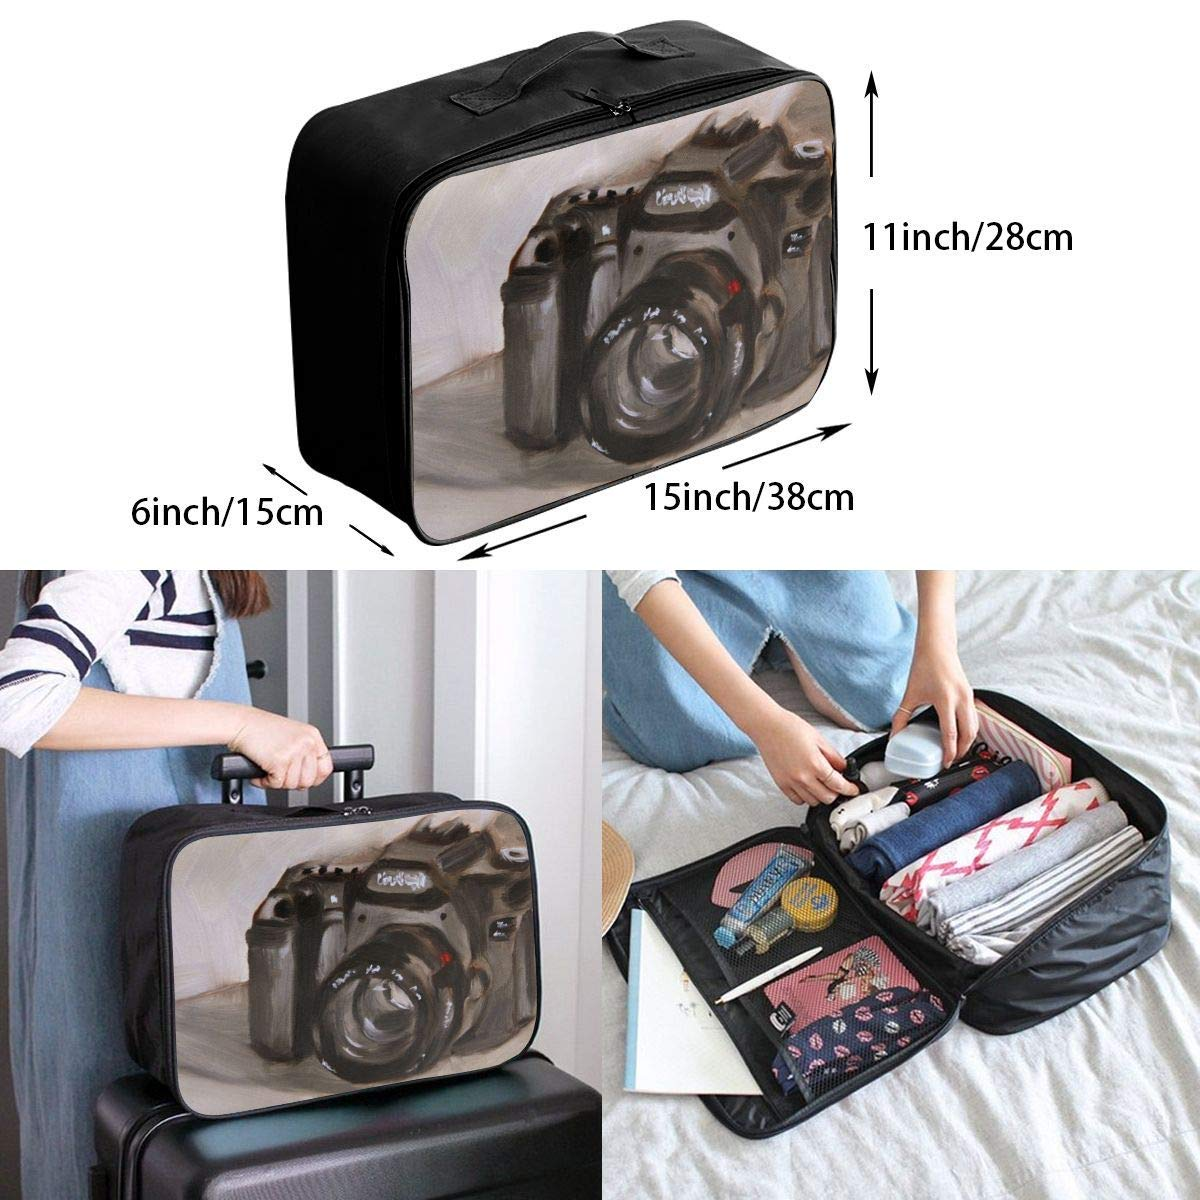 JTRVW Luggage Bags for Travel Lightweight Large Capacity Portable Duffel Bag for Men /& Women Camera Painting Travel Duffel Bag Backpack